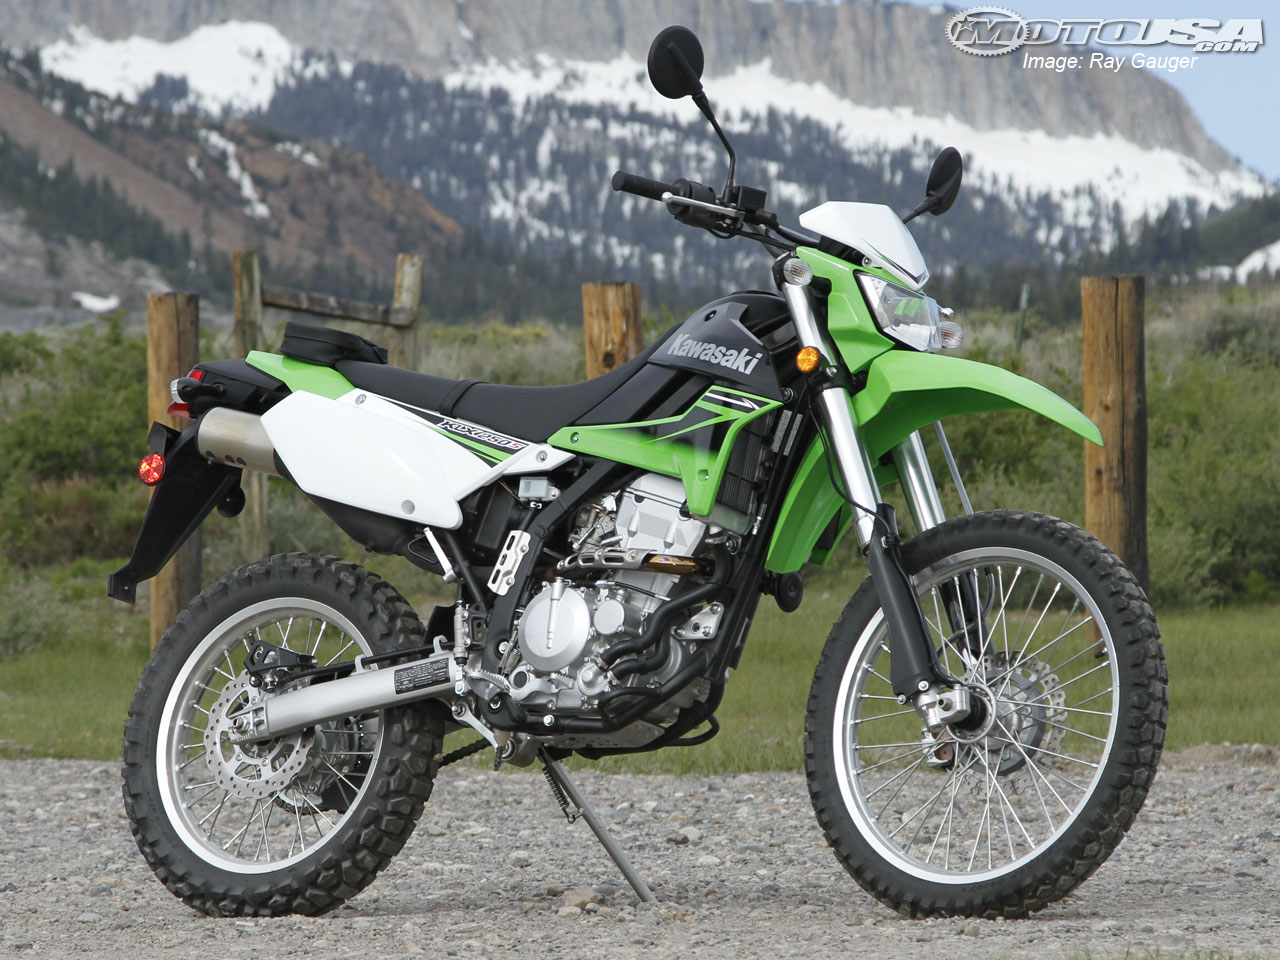 2009 Kawasaki KLX 250 S: pics, specs and information ...